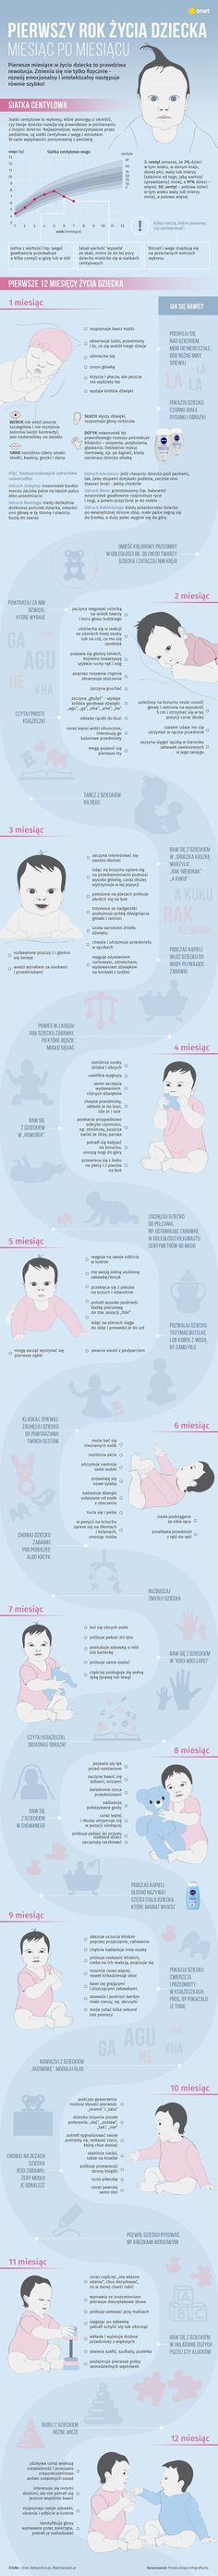 Pierwszy rok życia dziecka miesiąc po miesiącu [INFOGRAFIKA] - Dziecko Newborn Room, Newborn Baby Tips, Newborn Care, Cute Kids Photos, Montessori Baby, Baby Boom, Baby Belly, Wedding With Kids, Baby Hacks